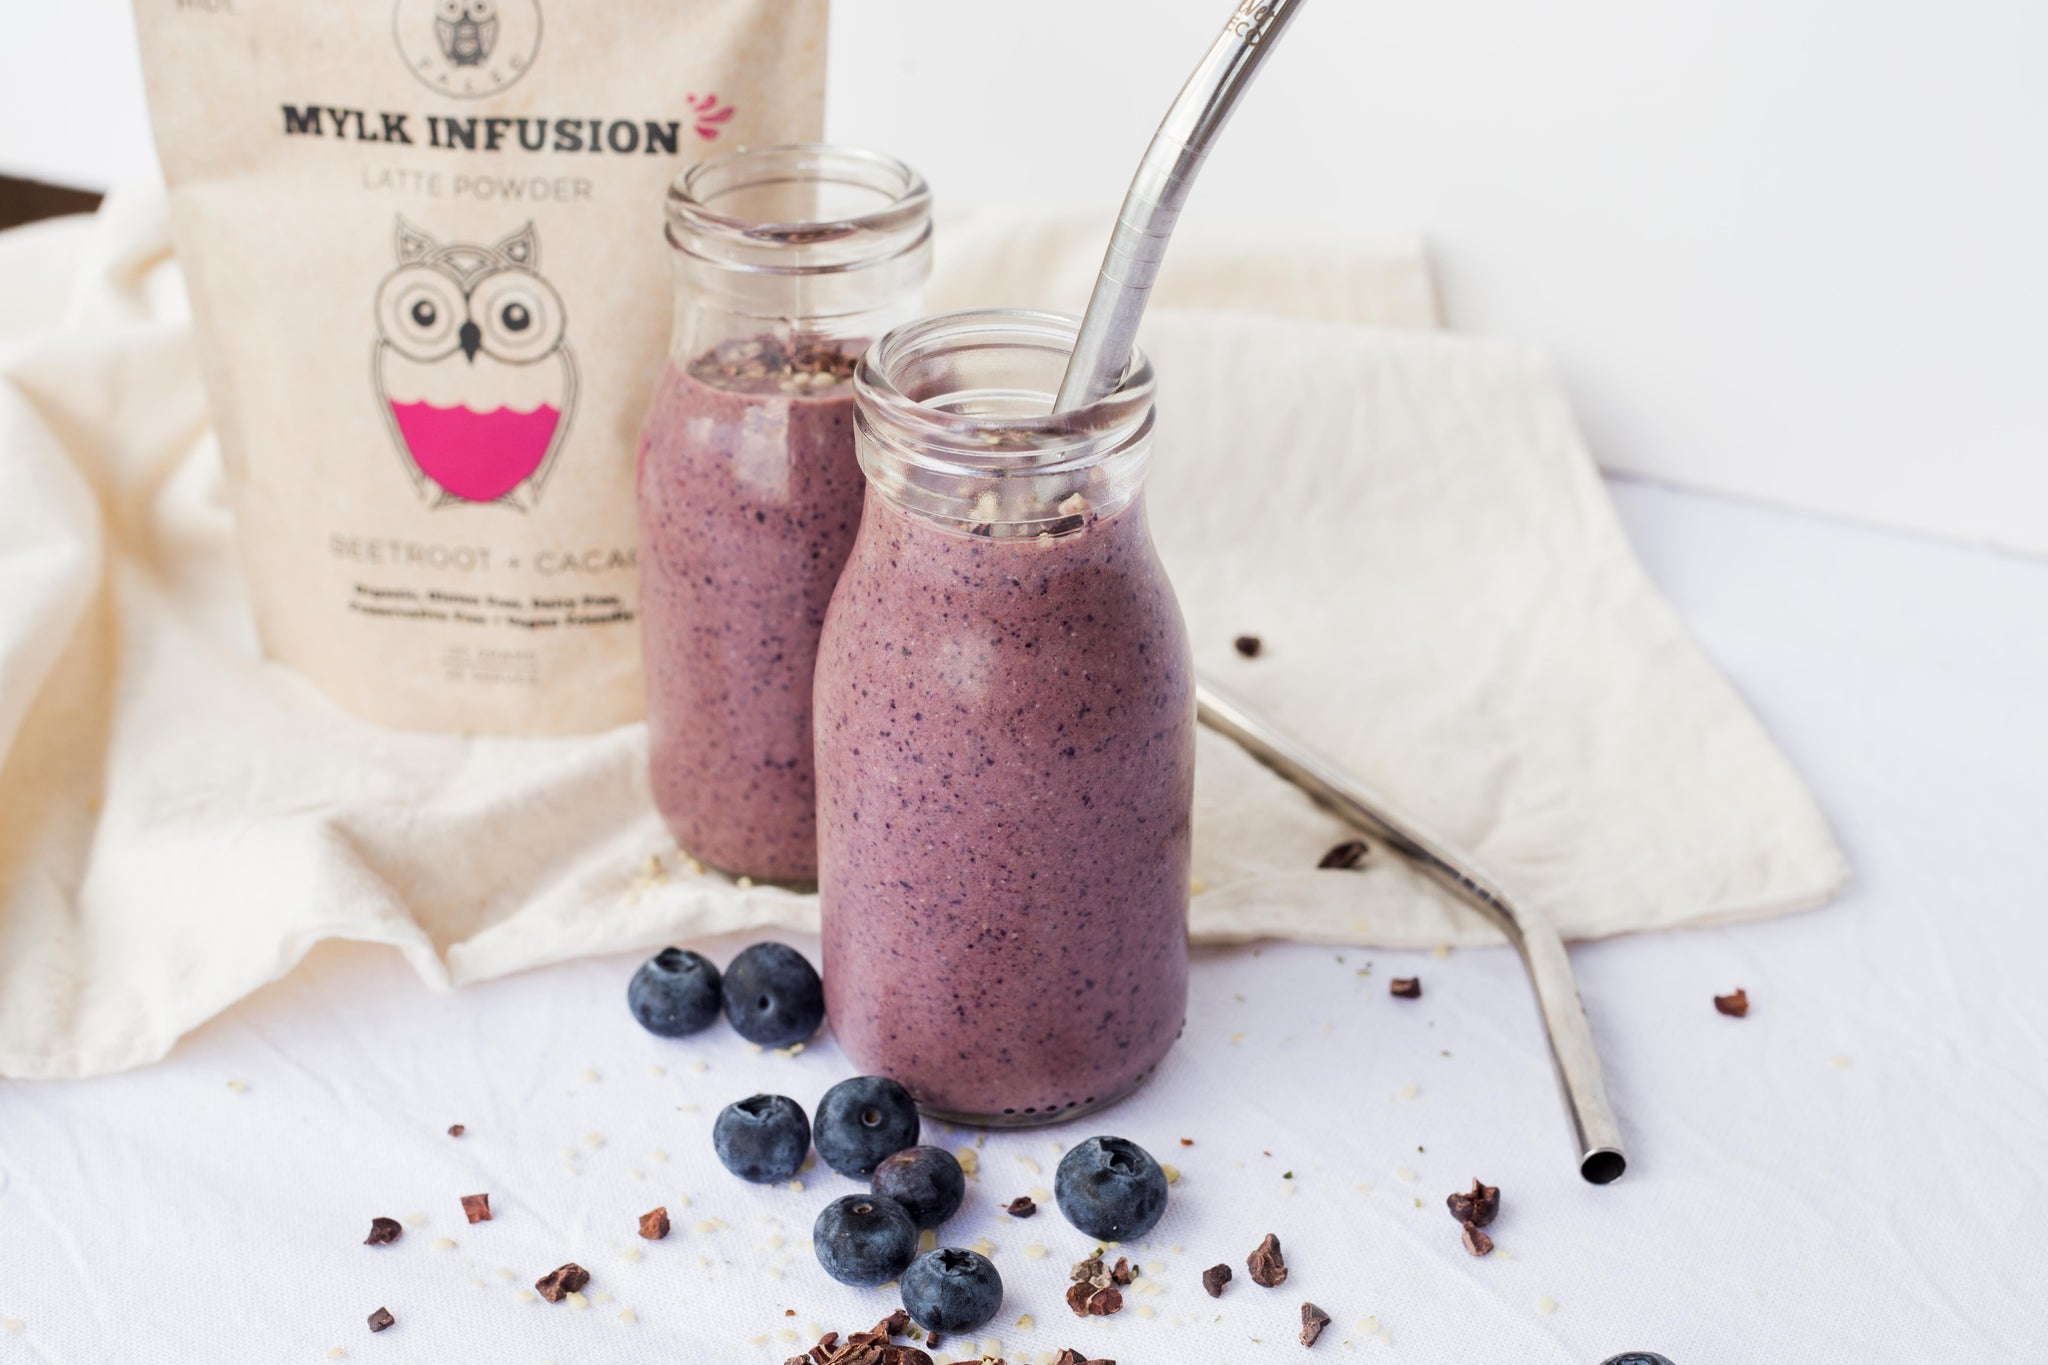 Naked Paleo Choc Beet Blueberry Smoothie Recipe Blog Organic Vegan Gluten Free Dairy Free Treats Snacks RSF